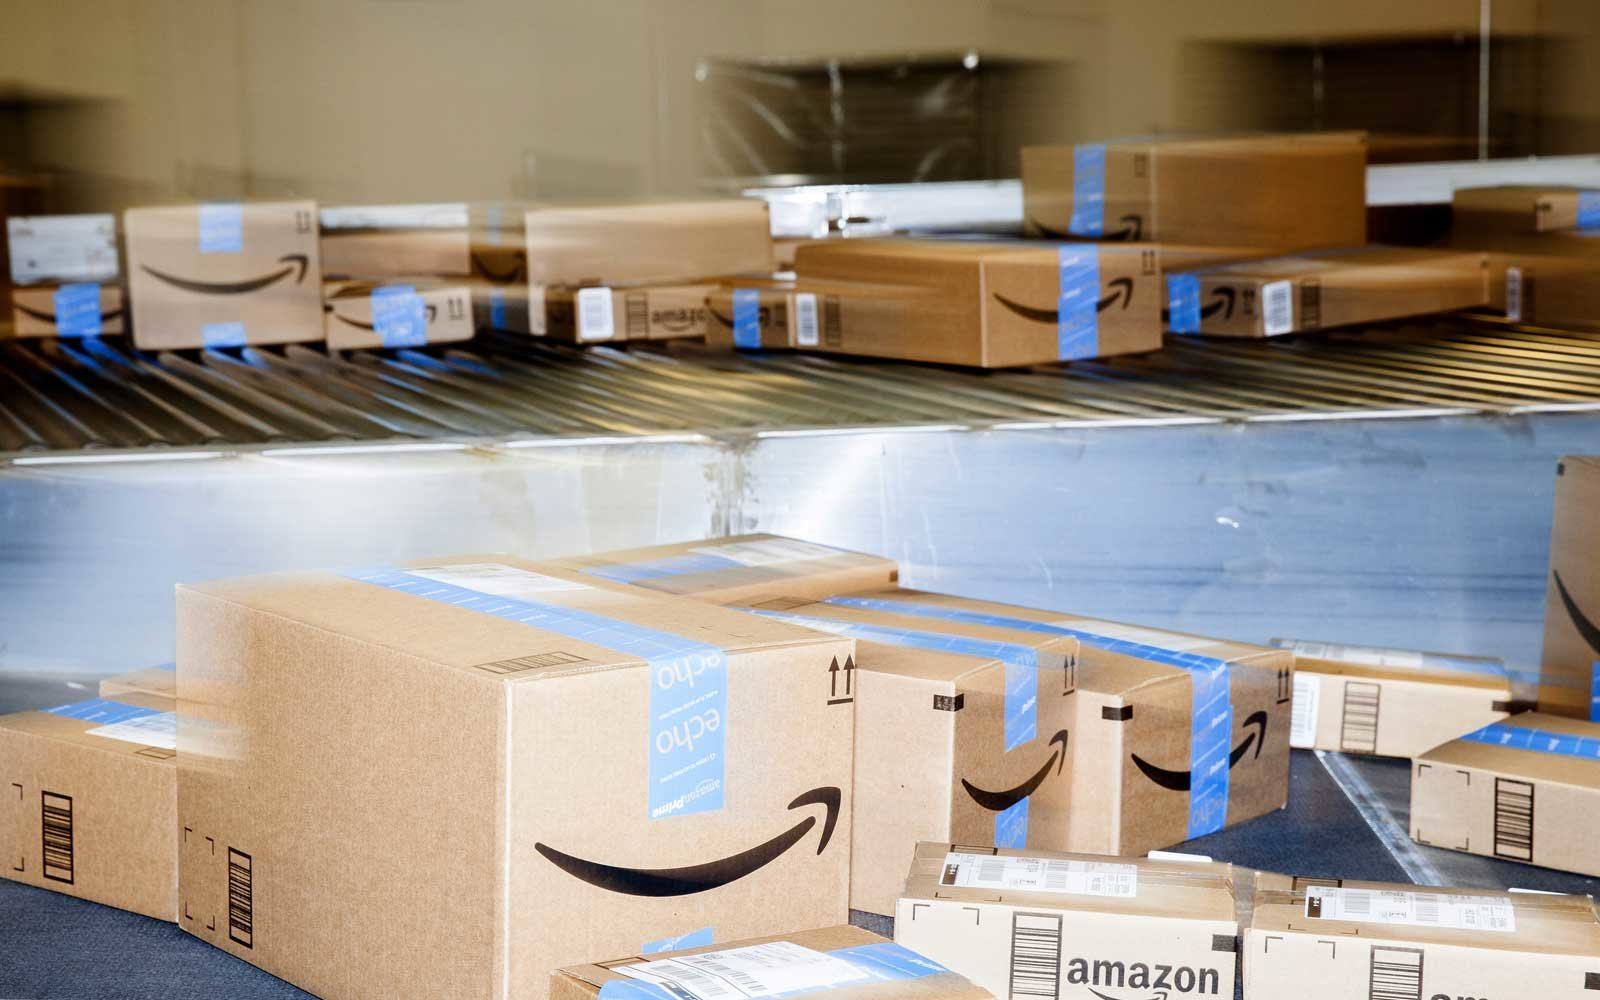 Amazon could ban you for too many returns